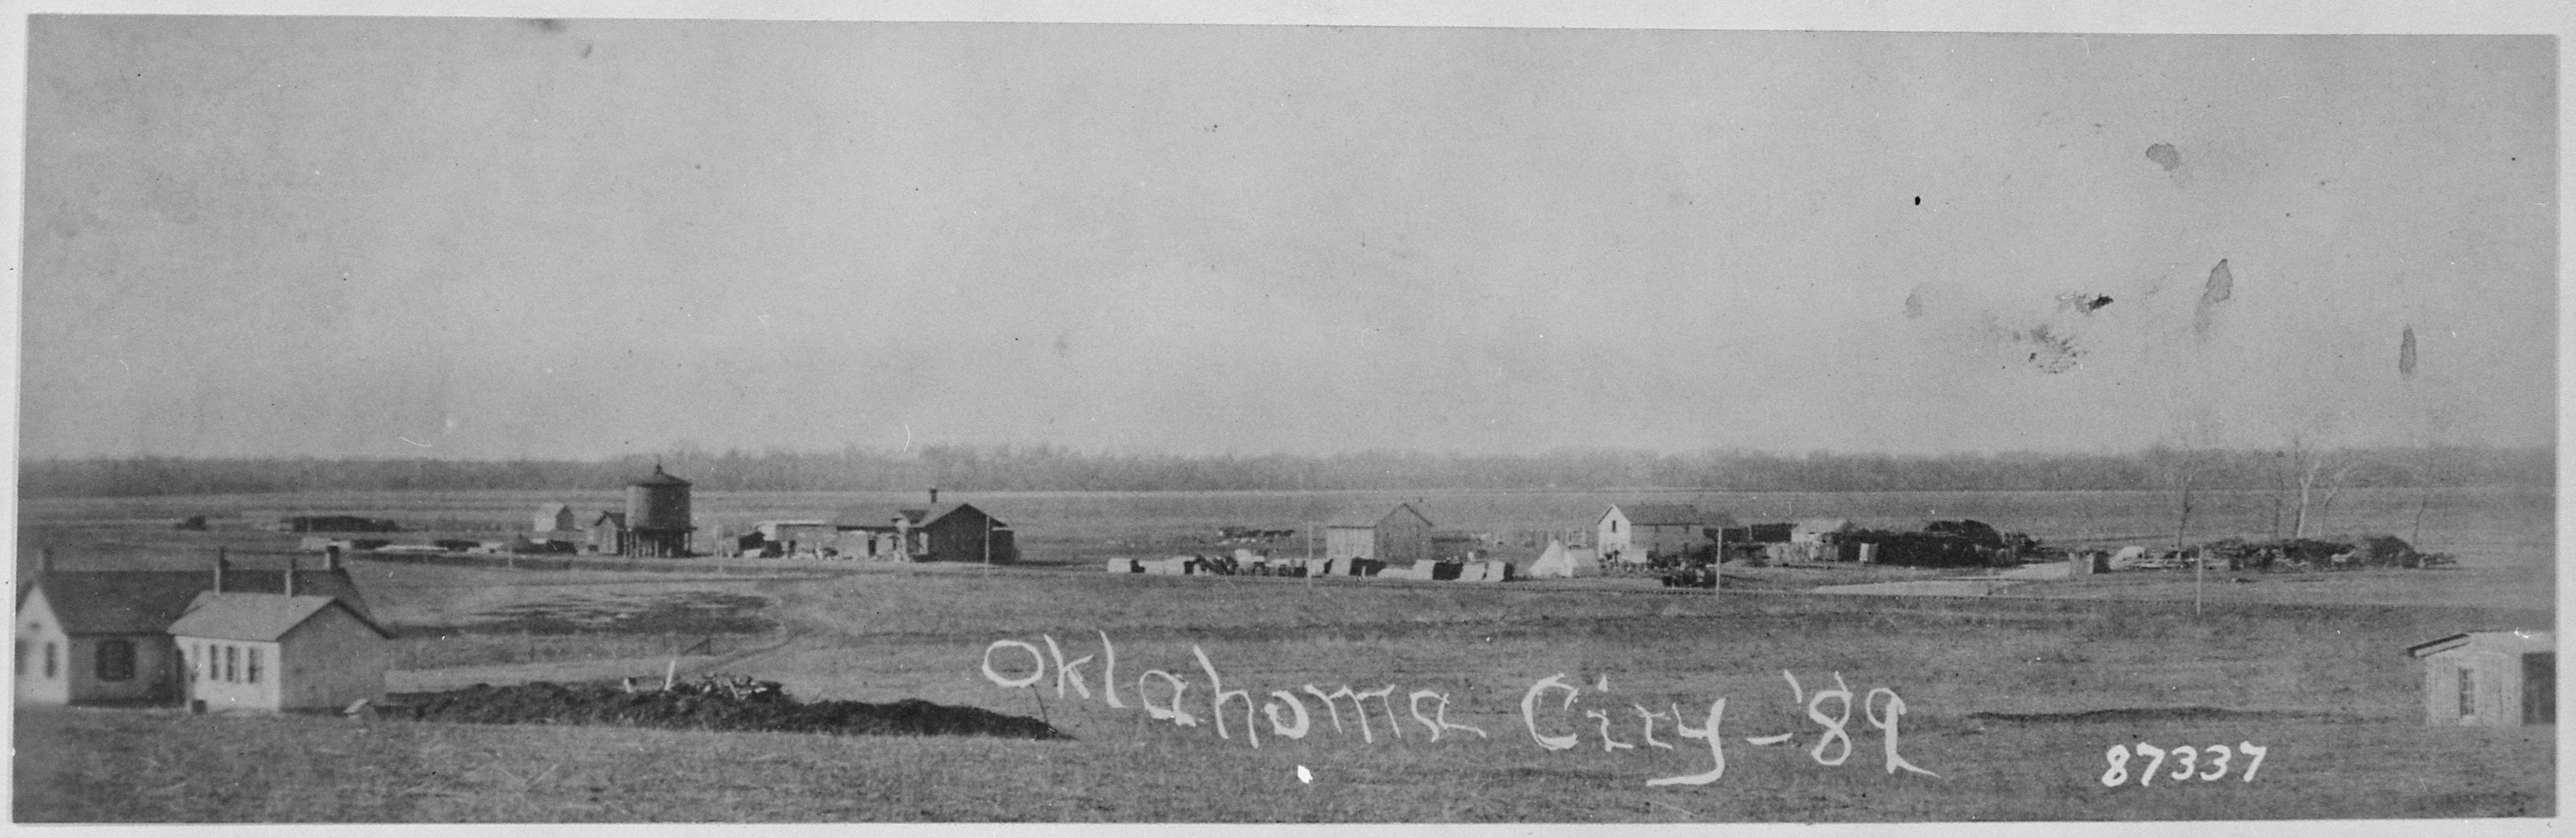 Oklahoma City Indian Clinic West Reno Avenue Oklahoma City Ok